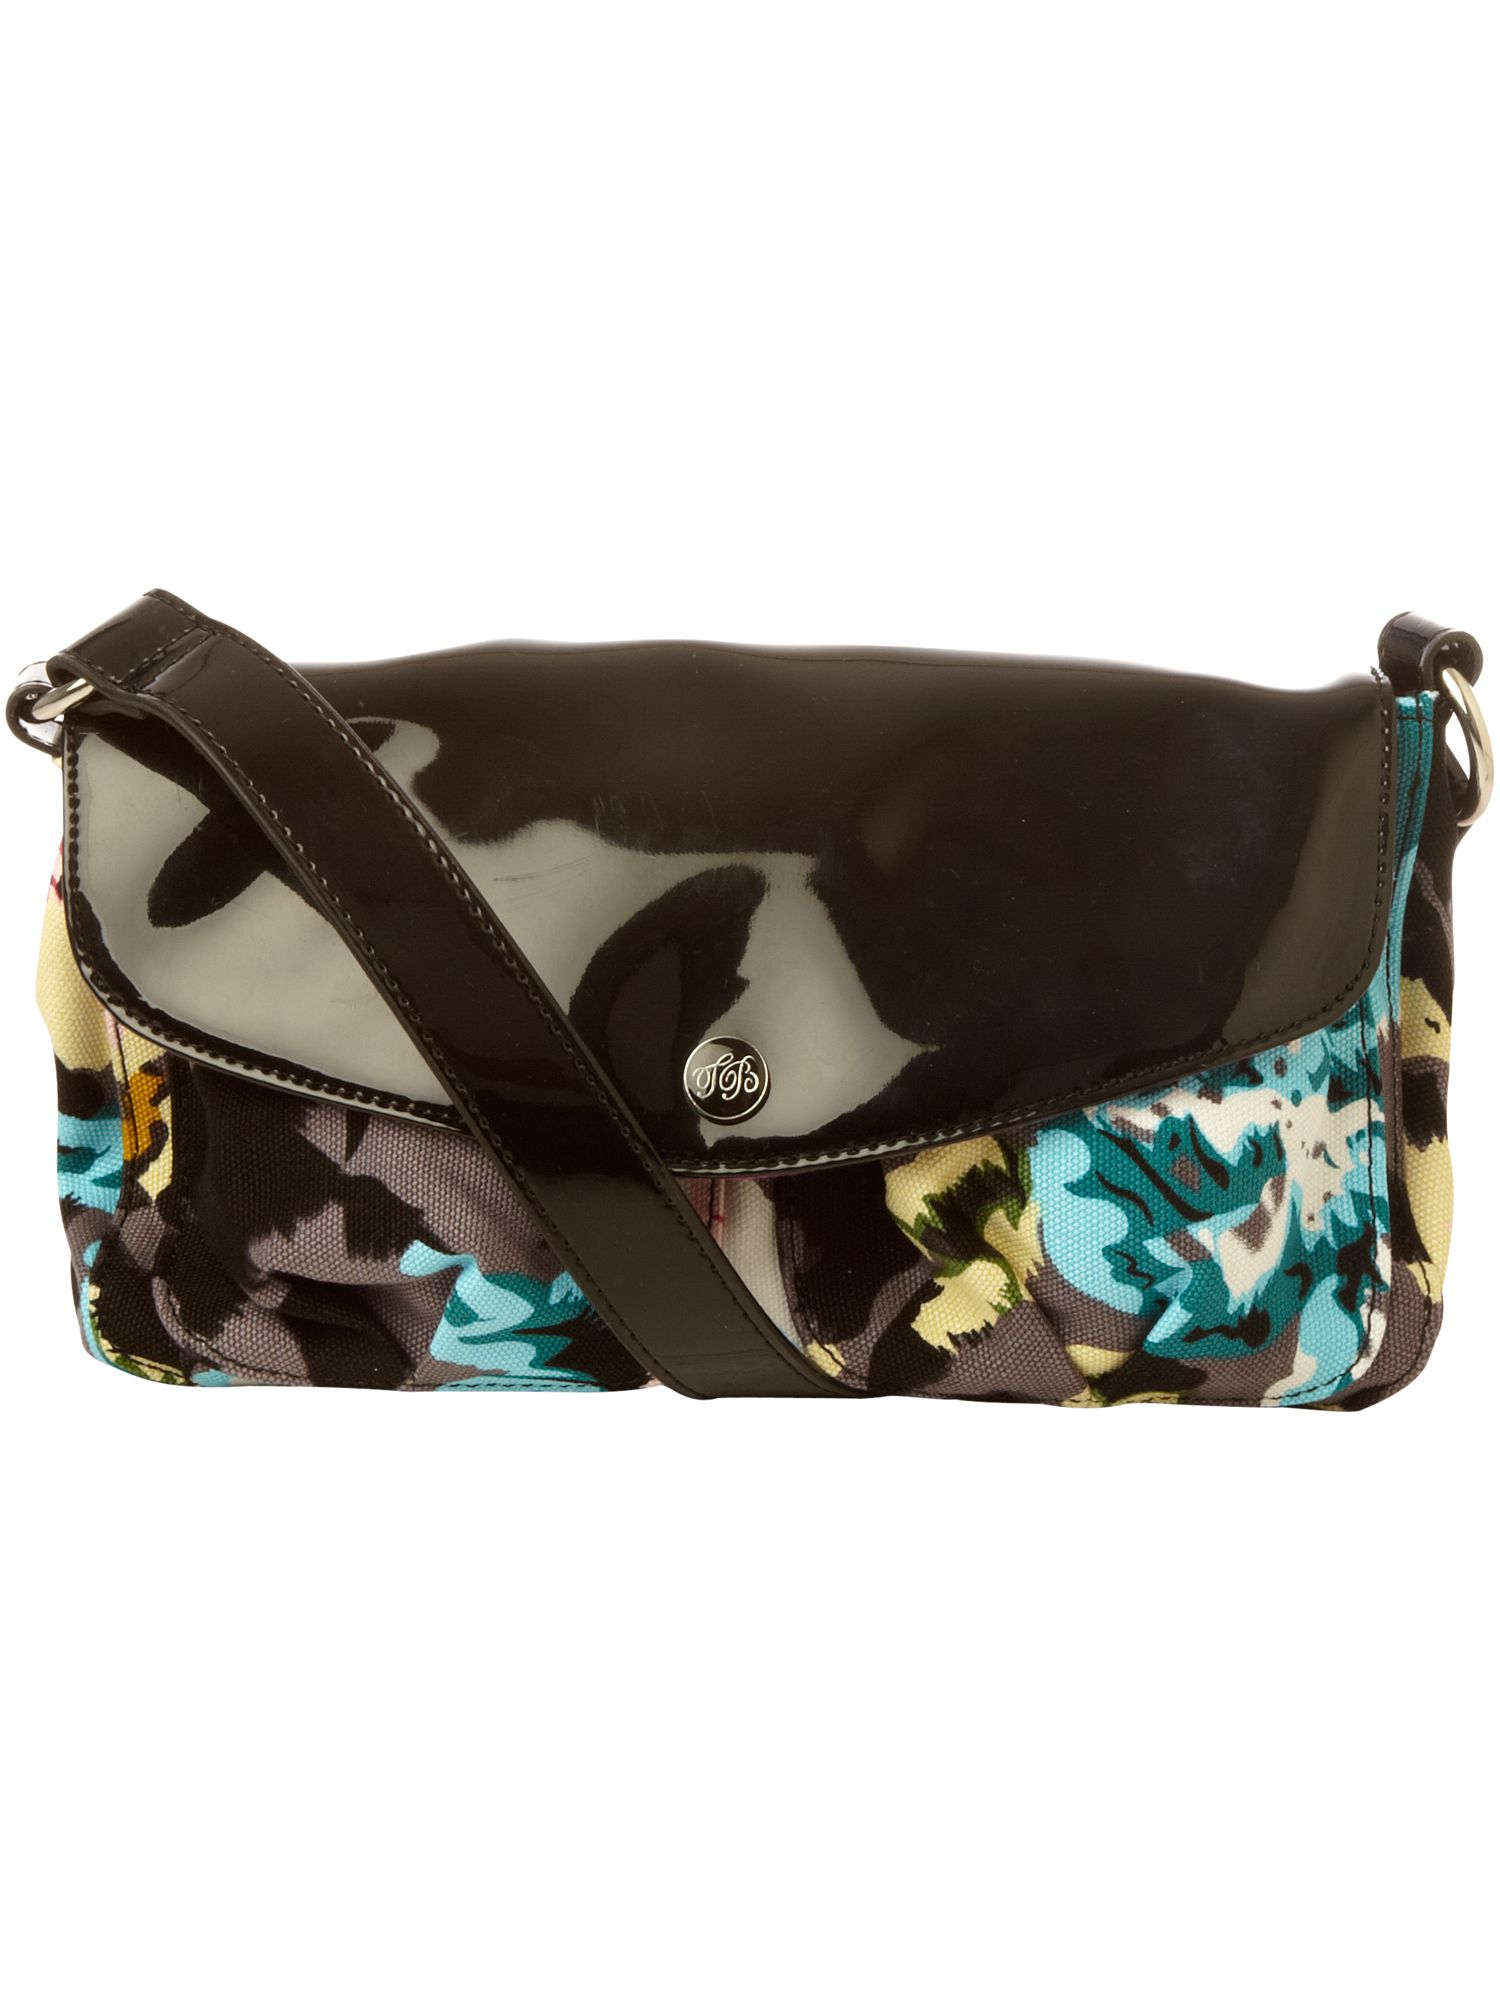 Ted Baker Karta medium nylon cross body bag product image